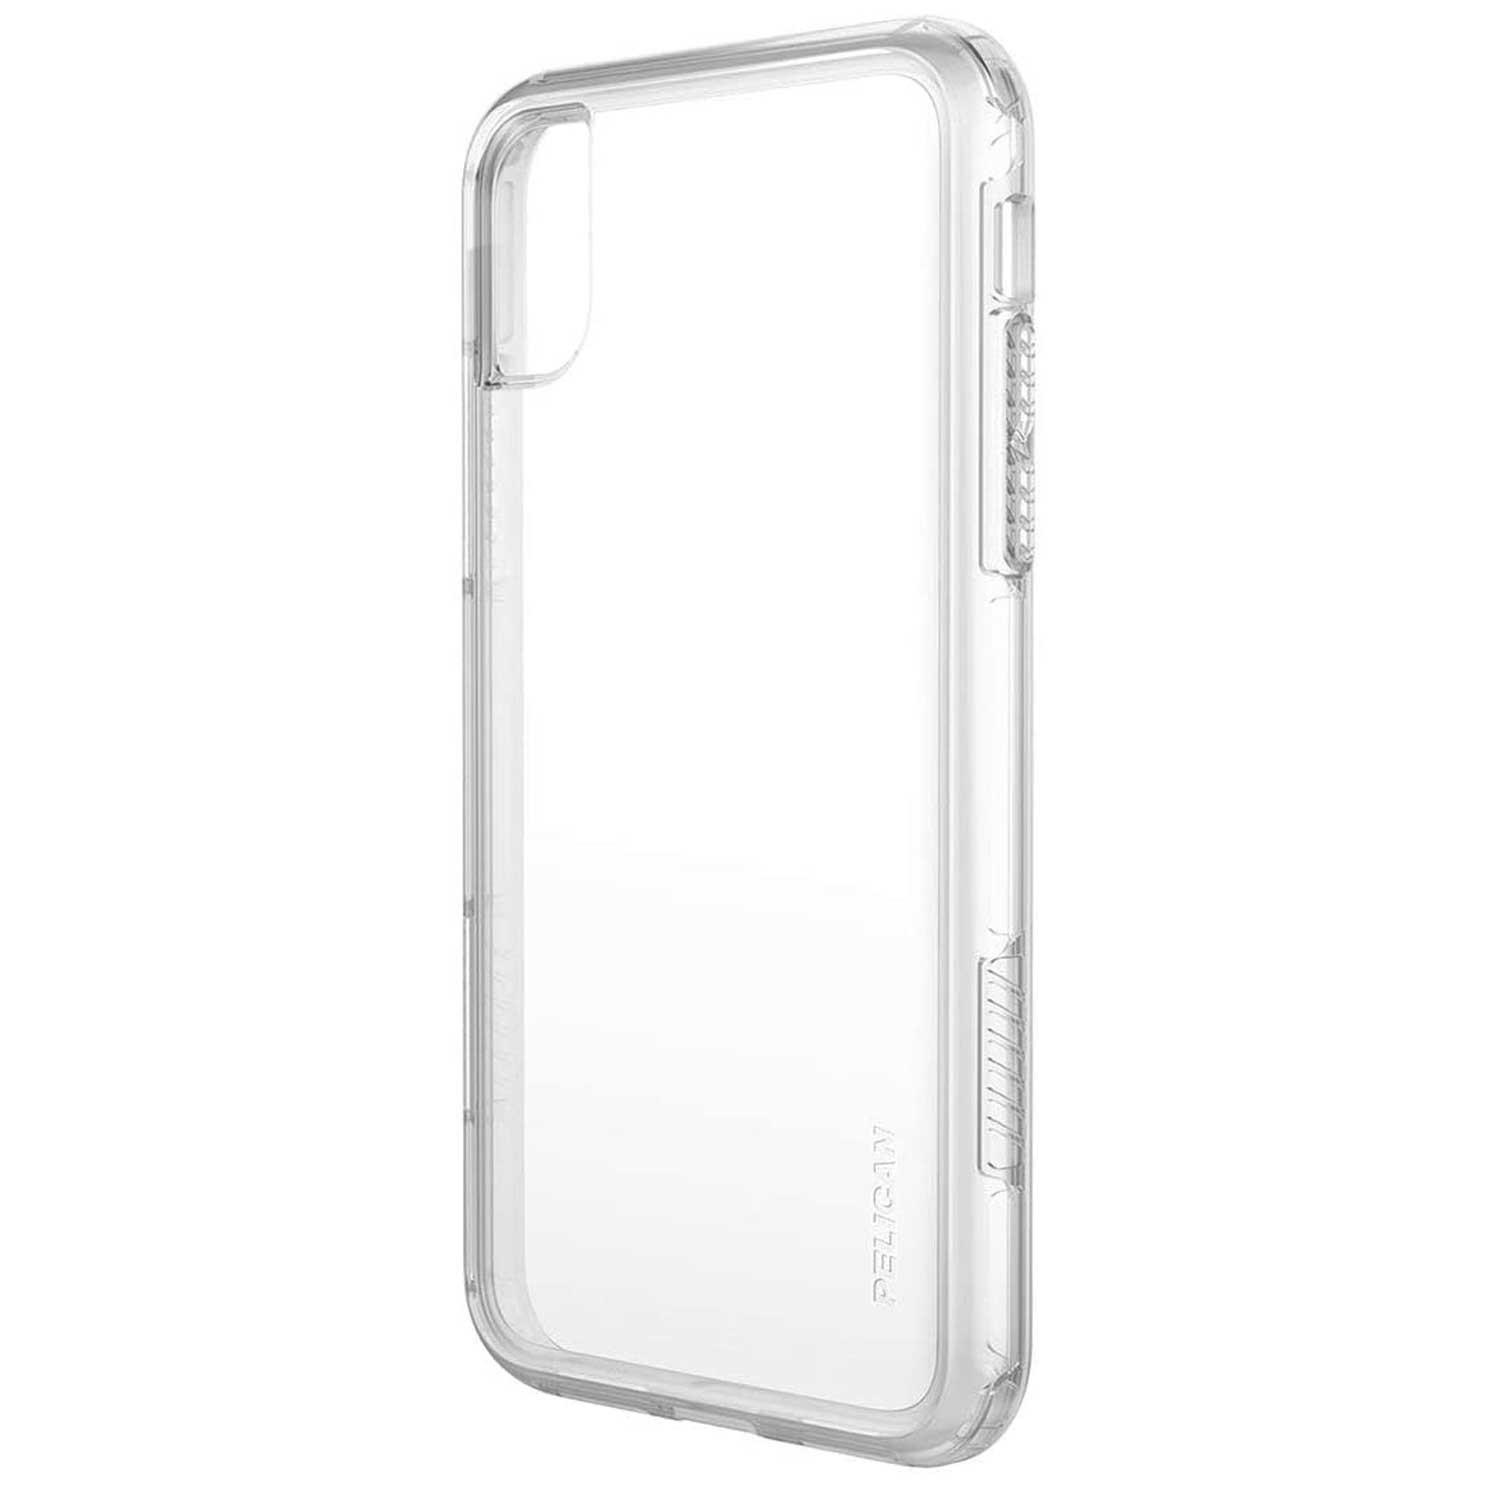 Case - PELICAN Adventurer for iPhone Xs / X Clear